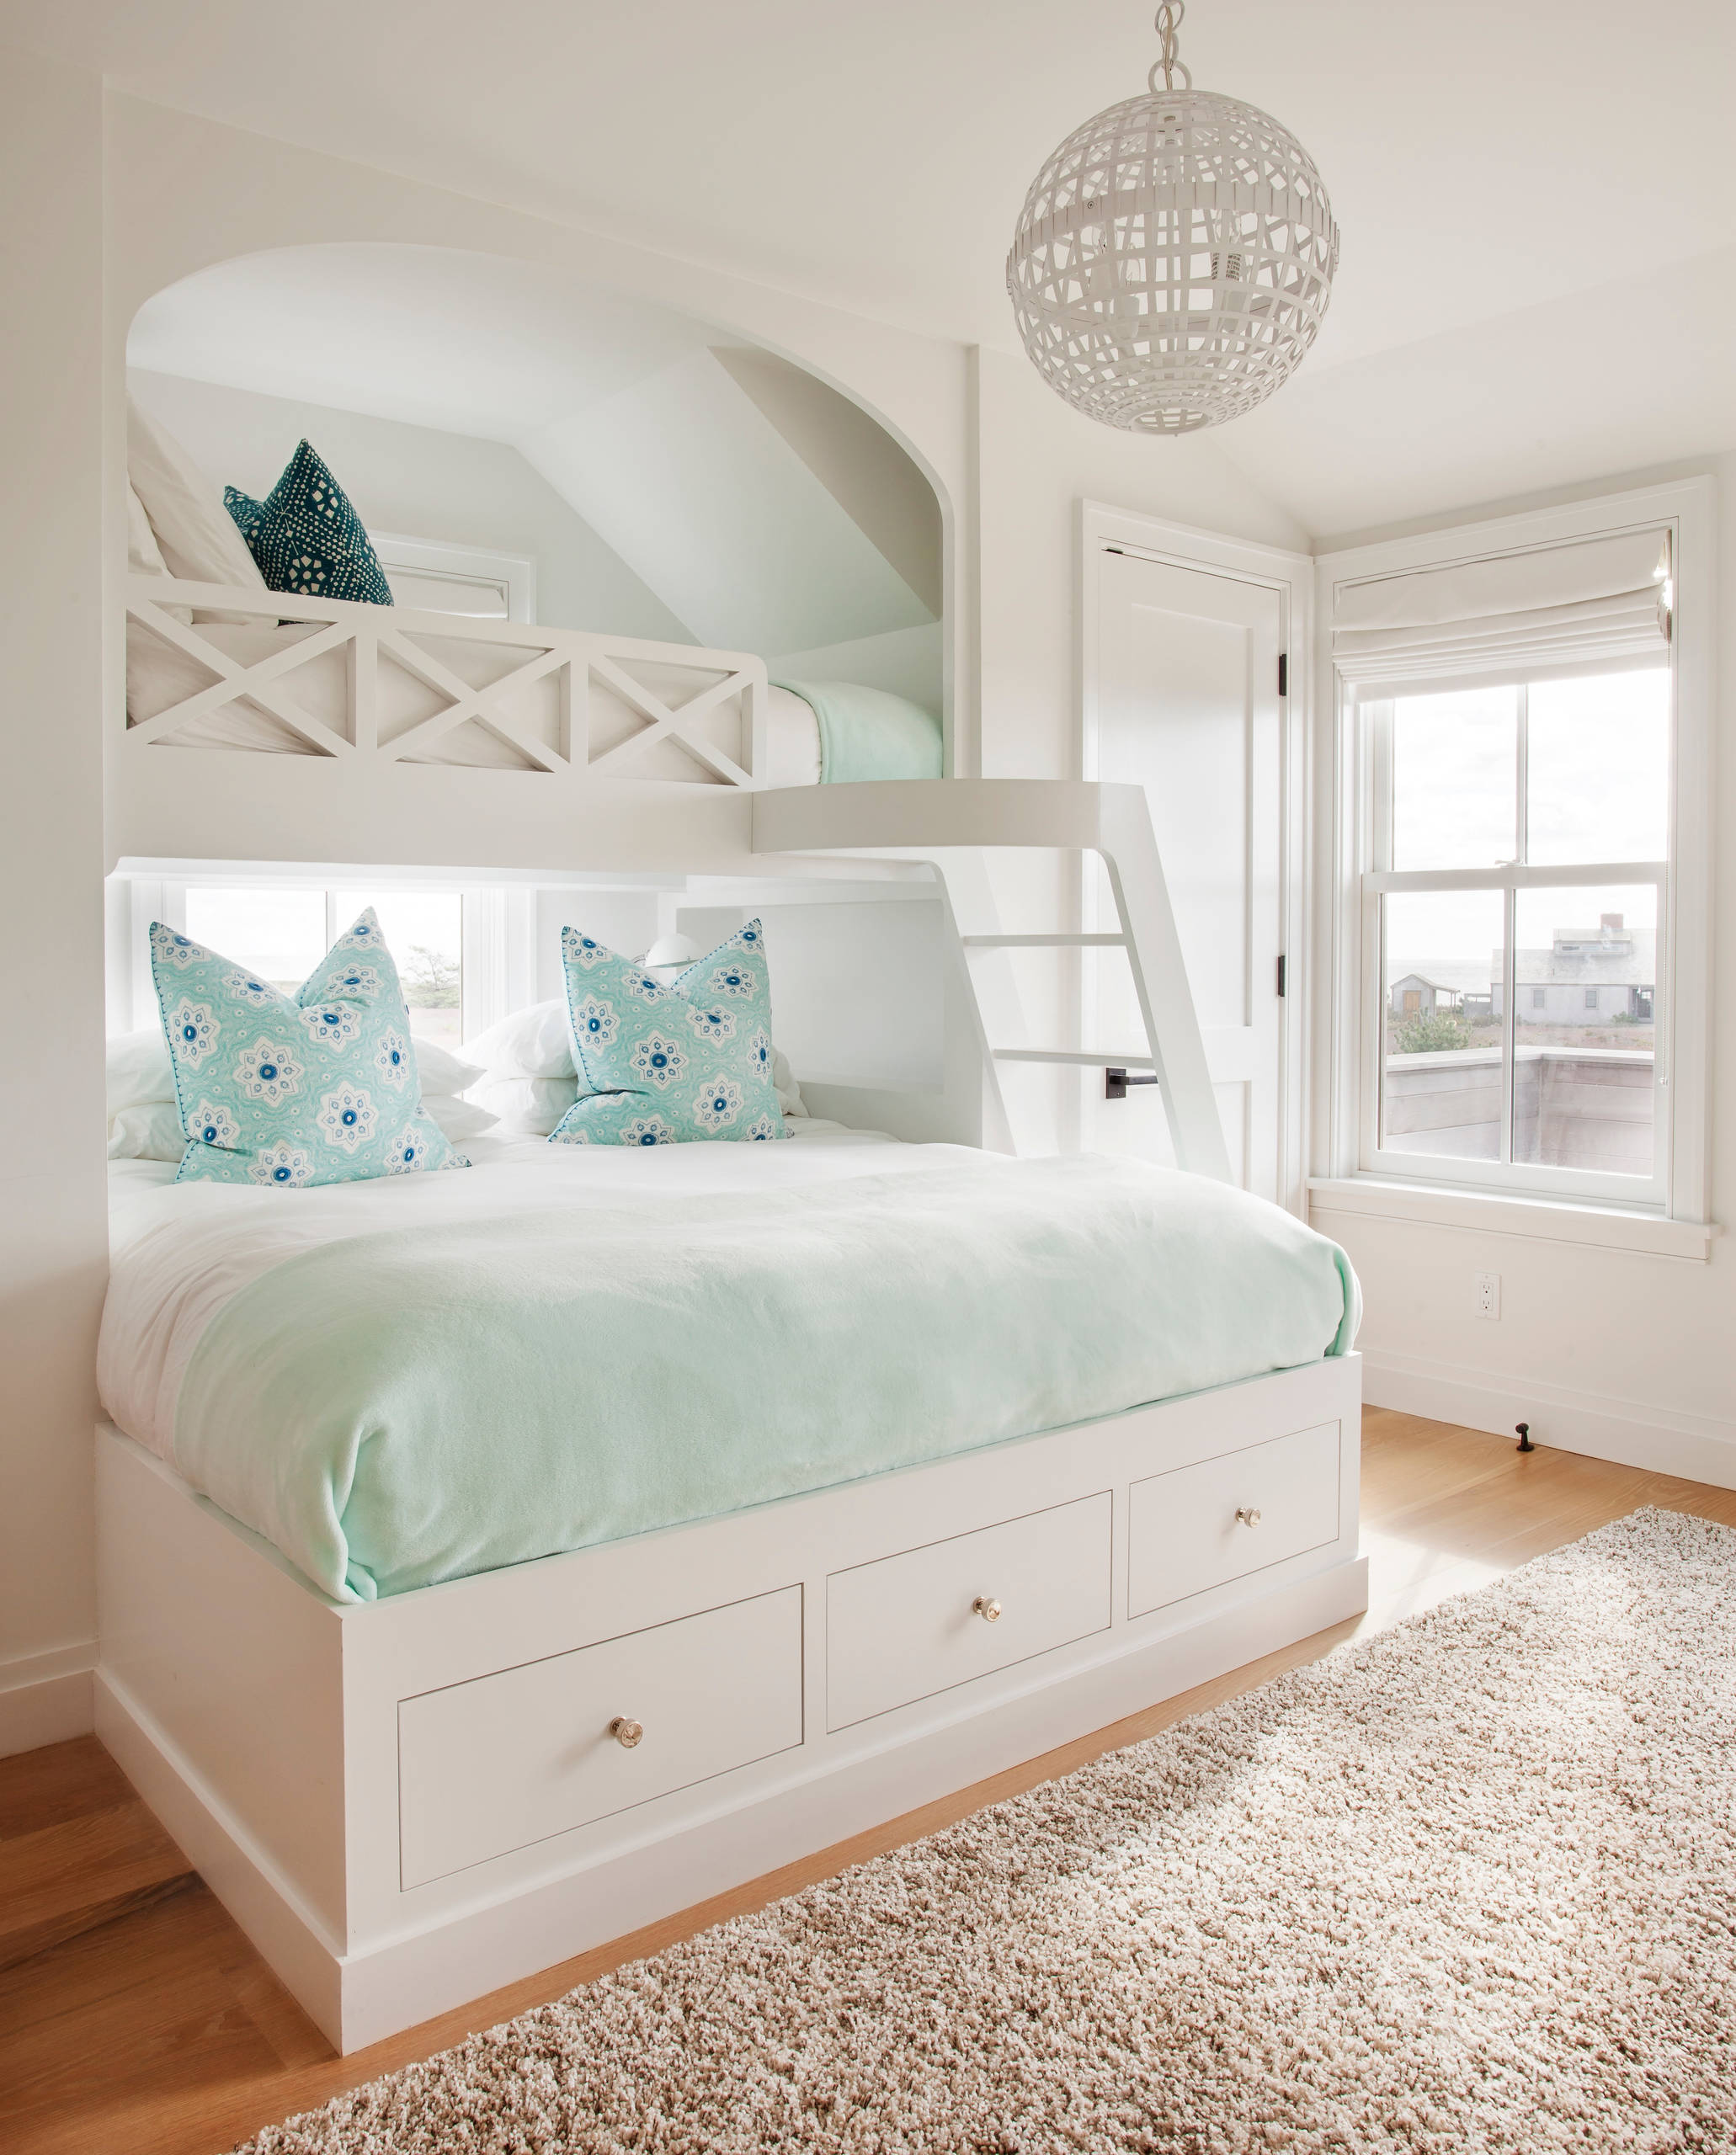 75 Beautiful Kids Room Pictures Ideas Style Coastal February 2021 Houzz